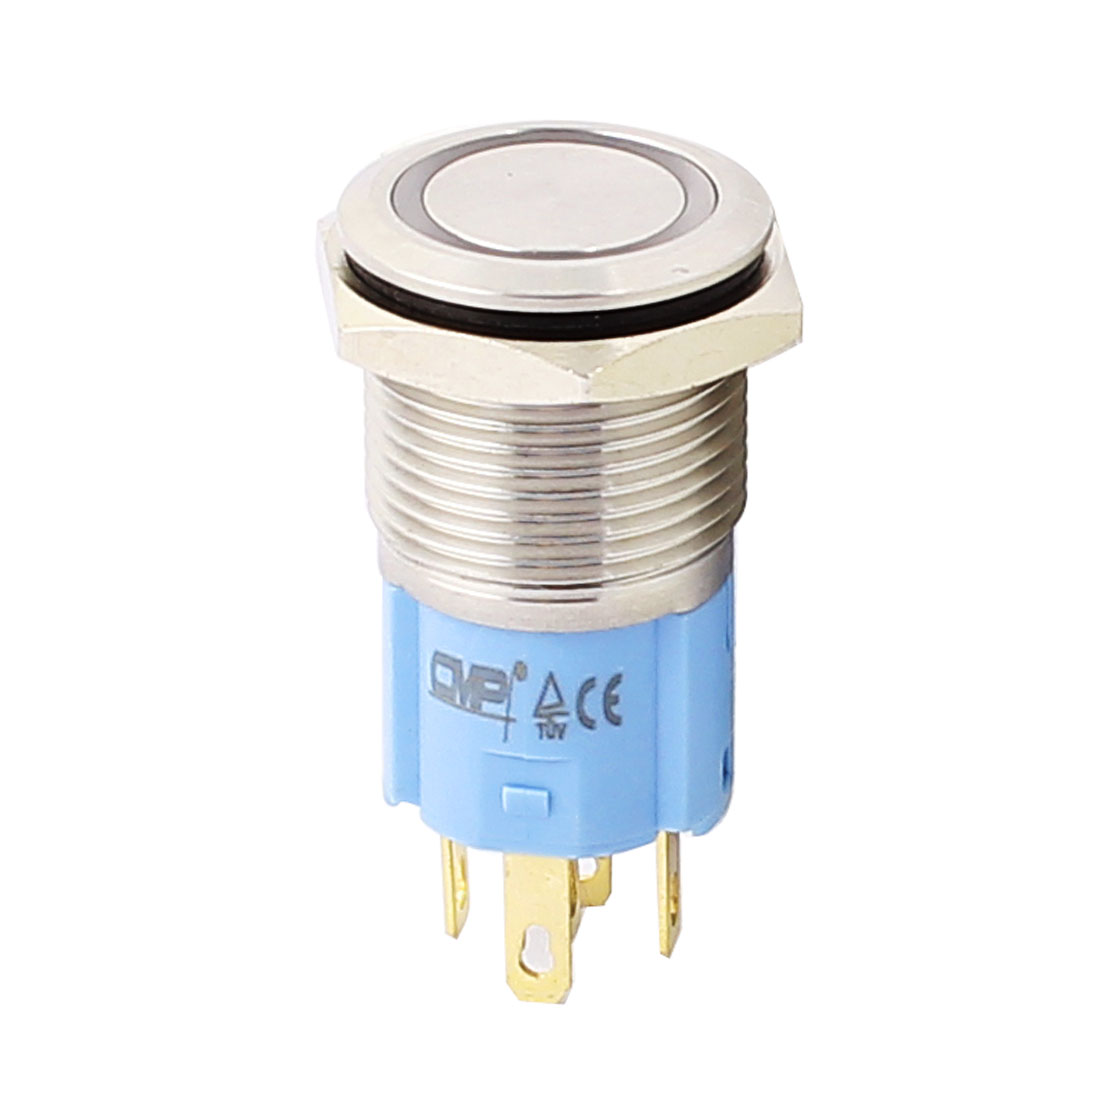 12V 16mm Thread Dia White LED Angle Eyes Momentary Metal Pushbutton Switch